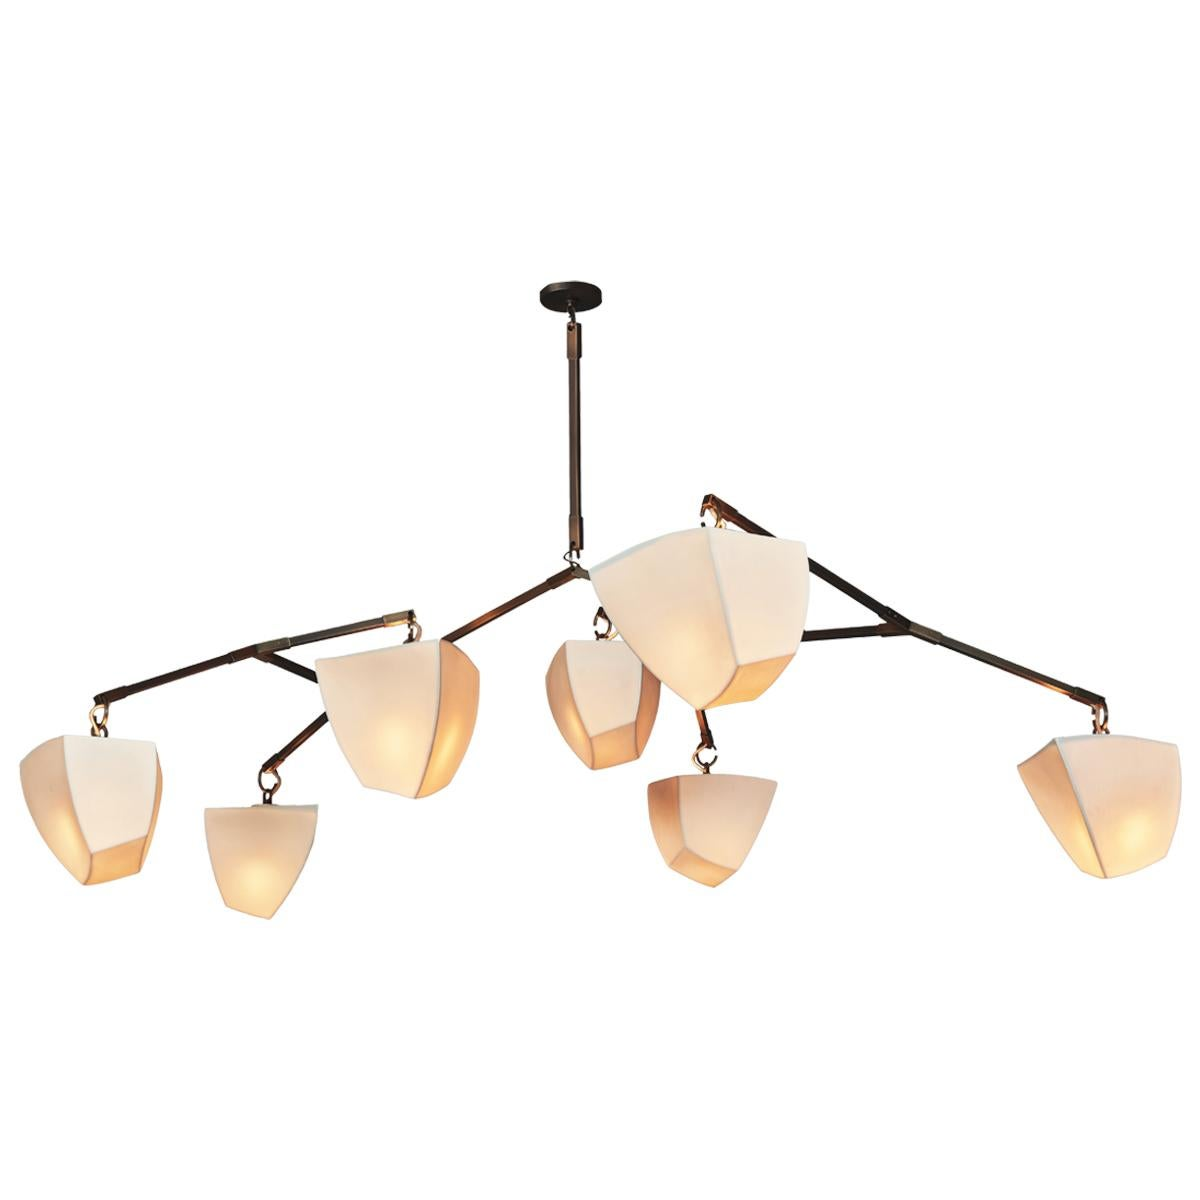 Cassiopeia 7 V2 Porcelain mobile chandelier by Andrea Claire Studio